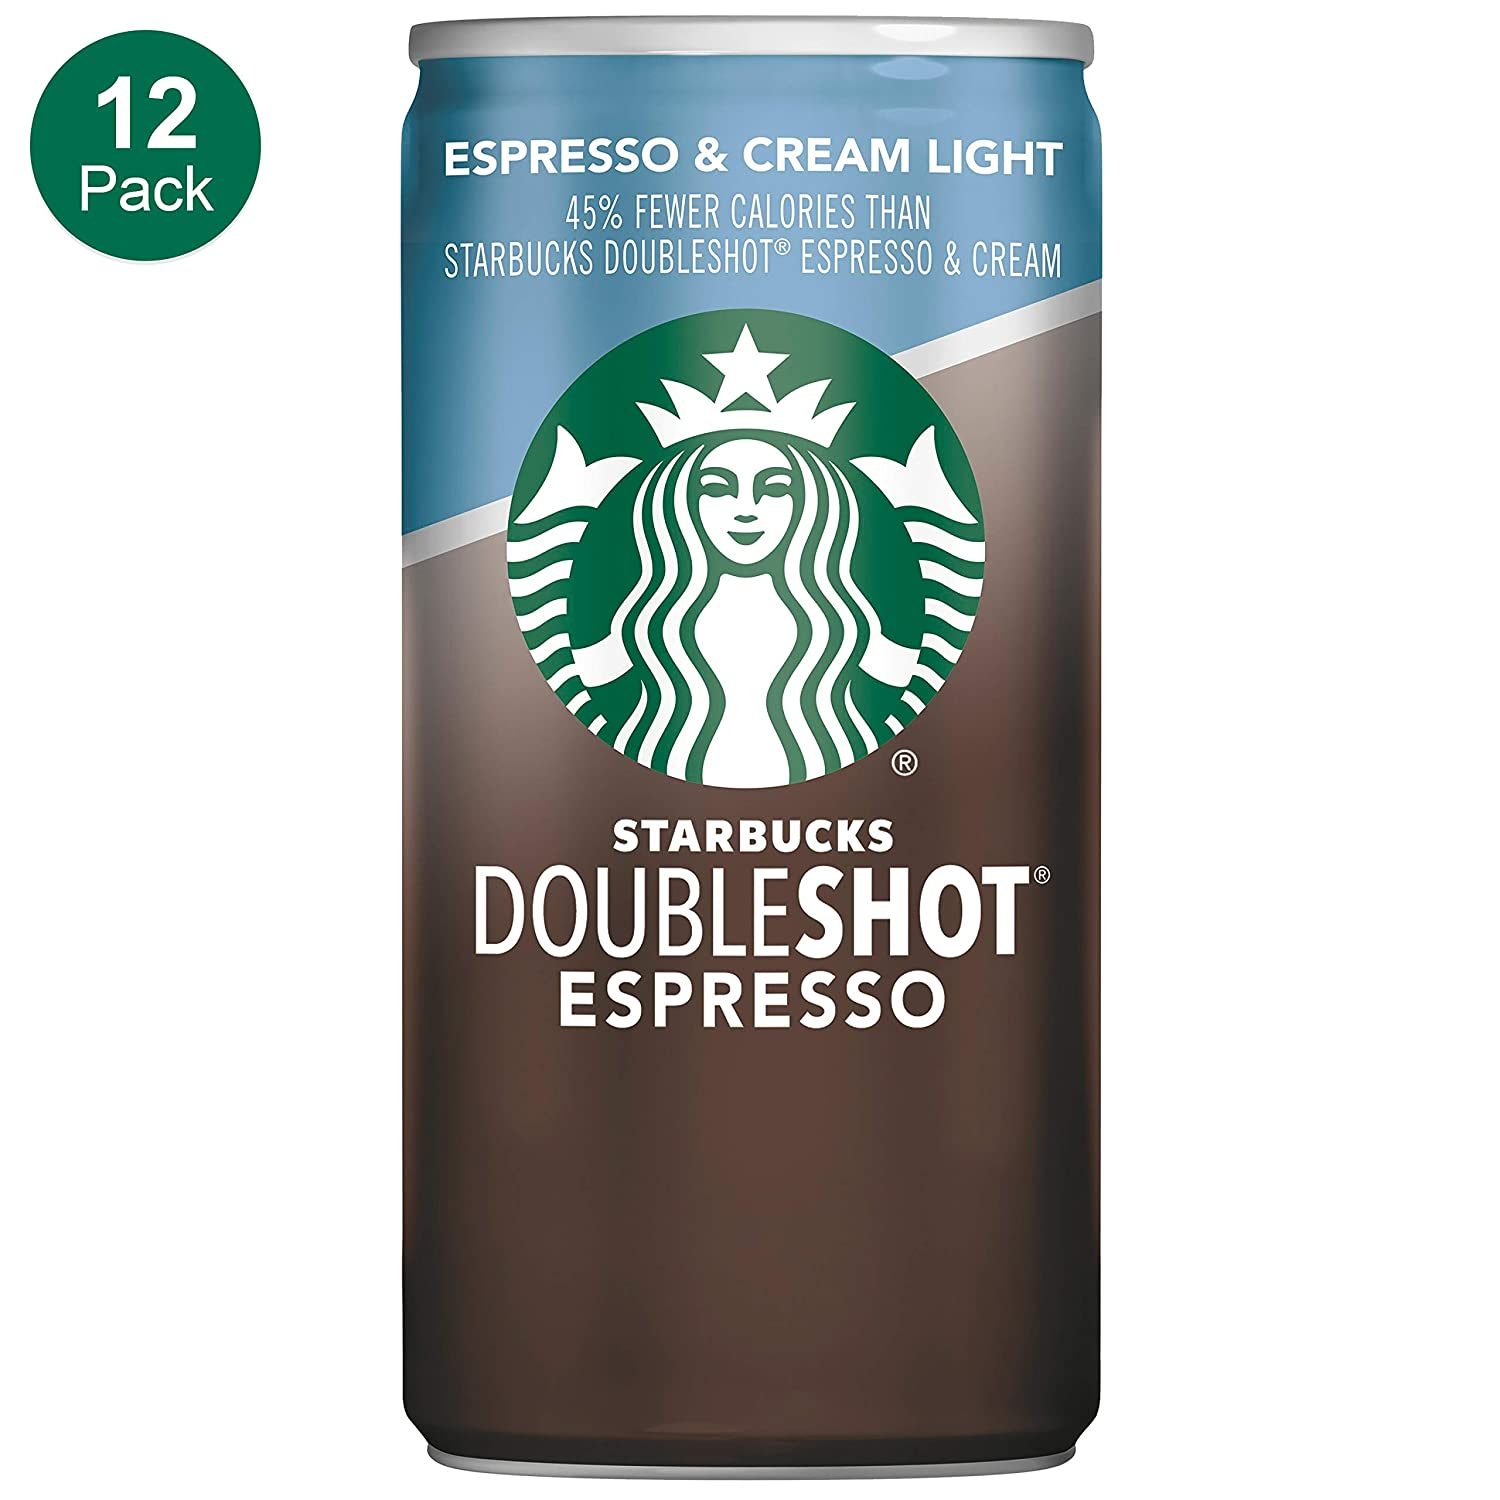 Starbucks Doubleshot Espresso Cream Light 6 5 Ounce 12 Pack